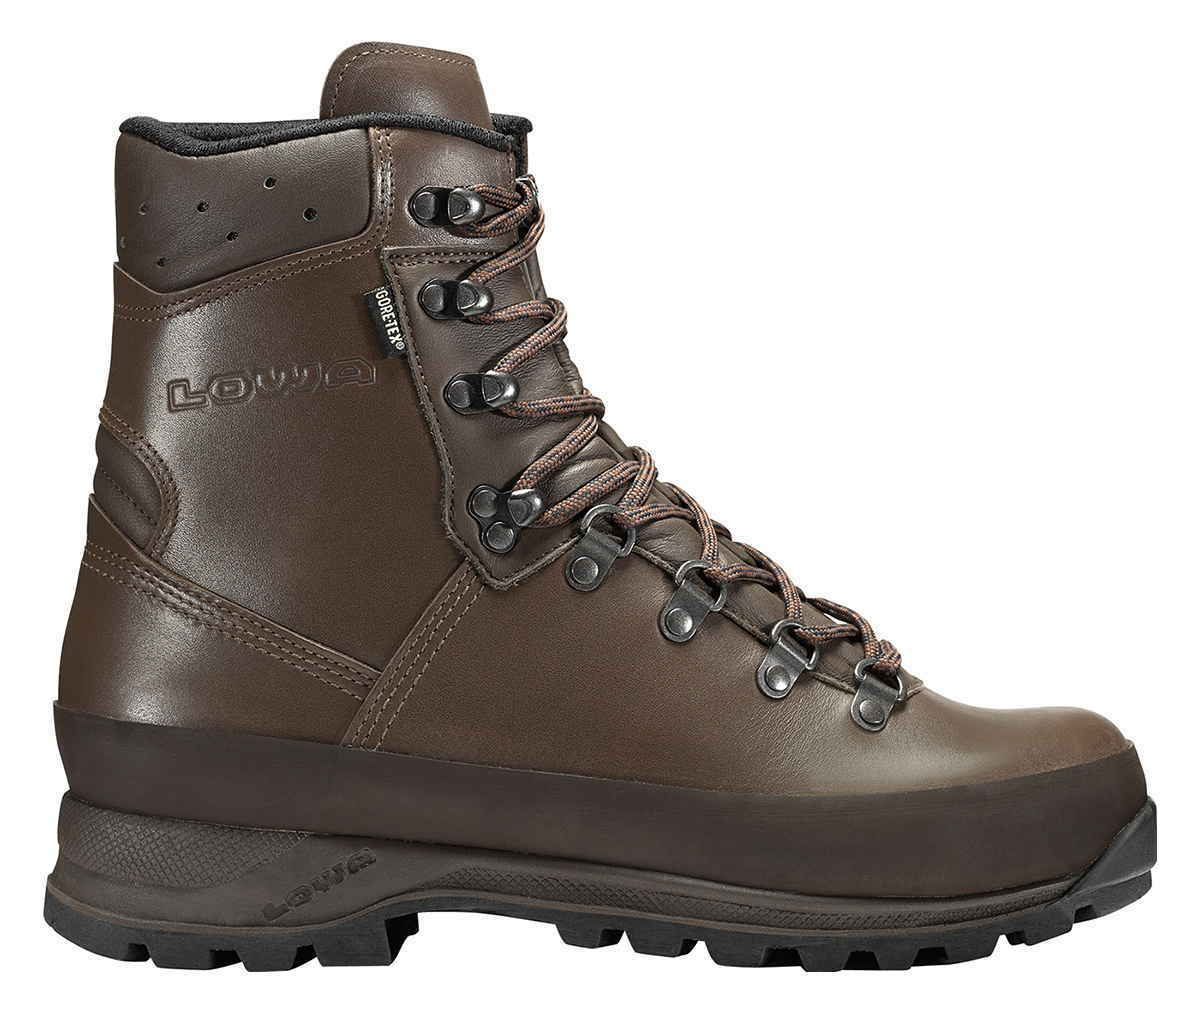 Lowa Mountain GTX Gore-tex MOD Brown Military Combat Waterproof Boots ALL SIZES